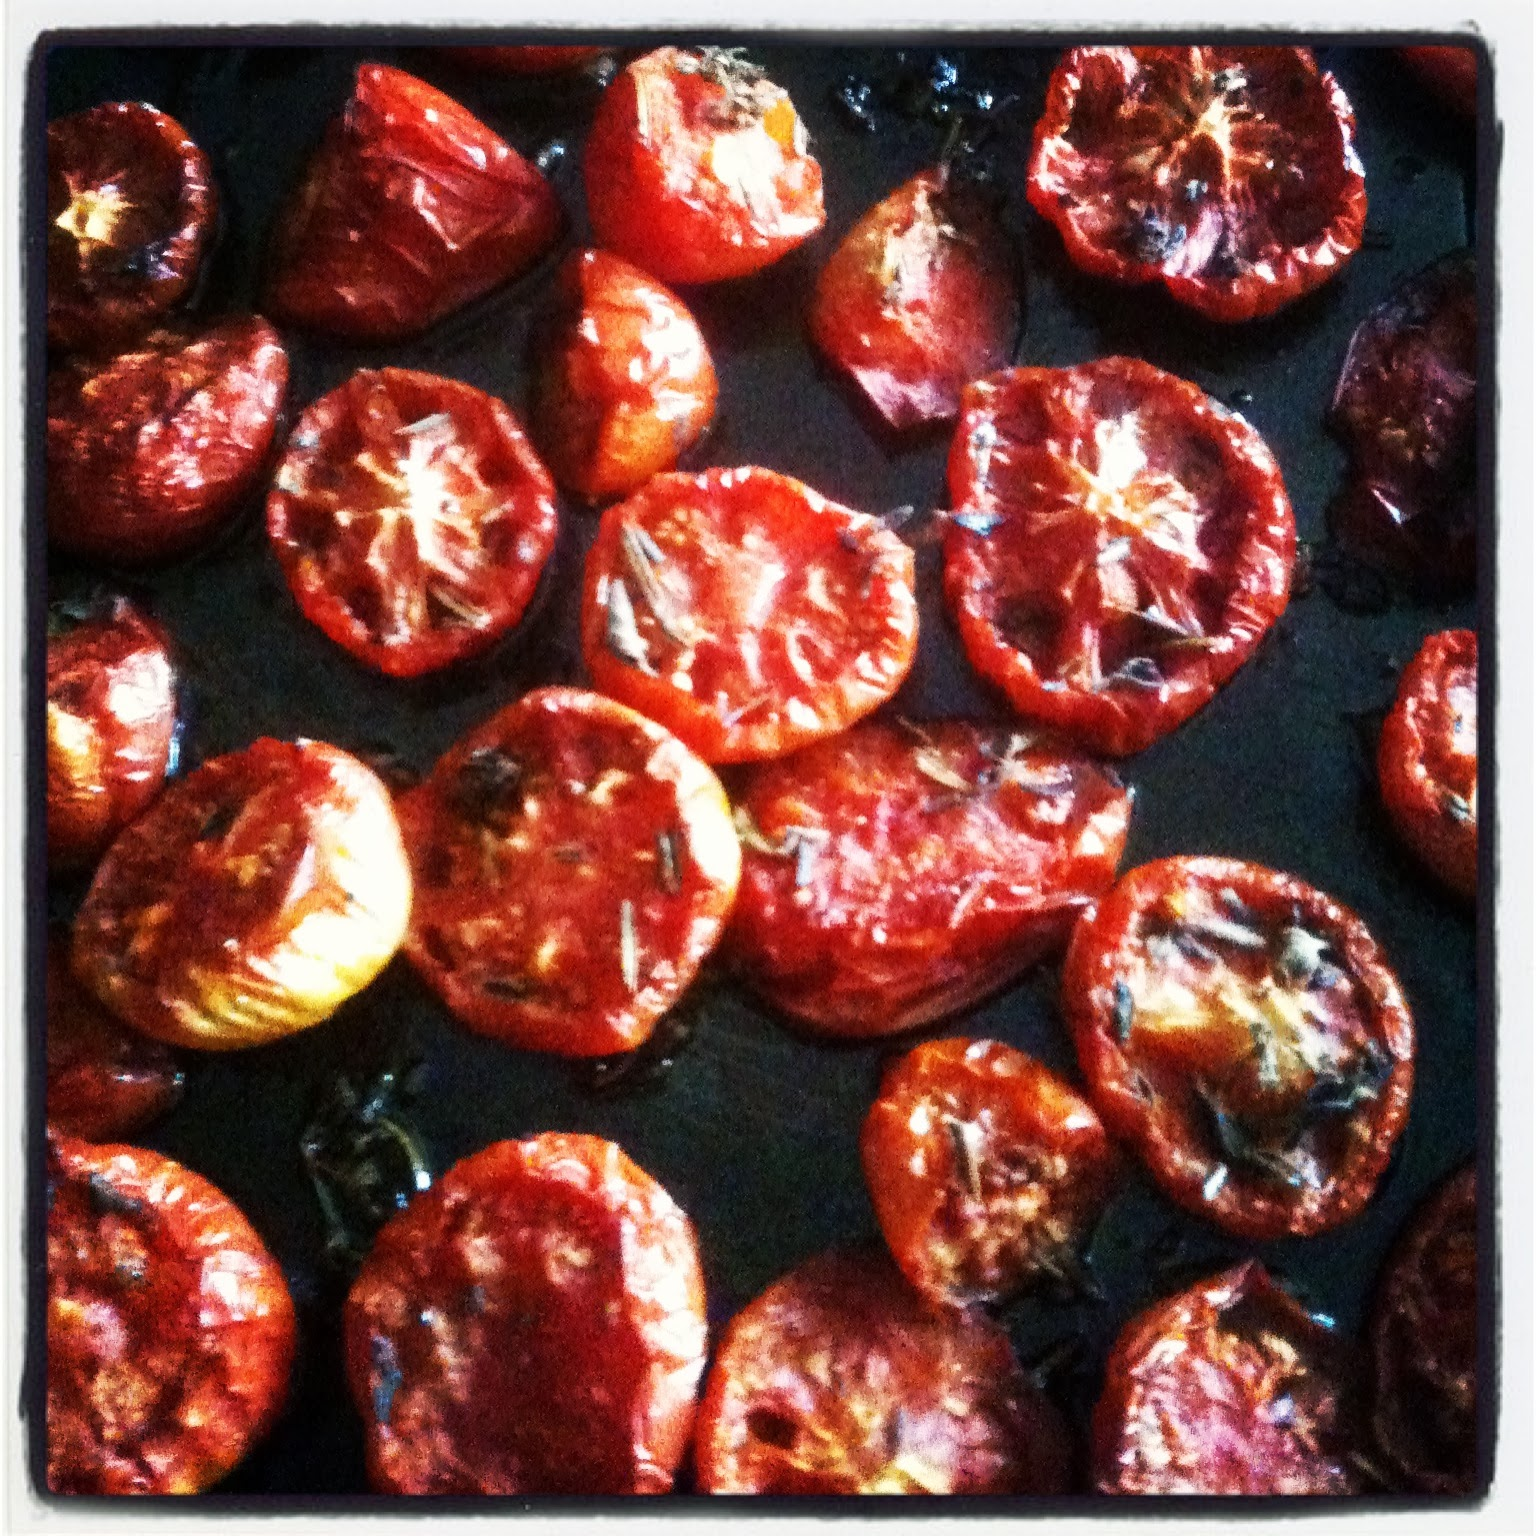 The best of both world for freezing and preserving tomatoes for a larder or freezer.